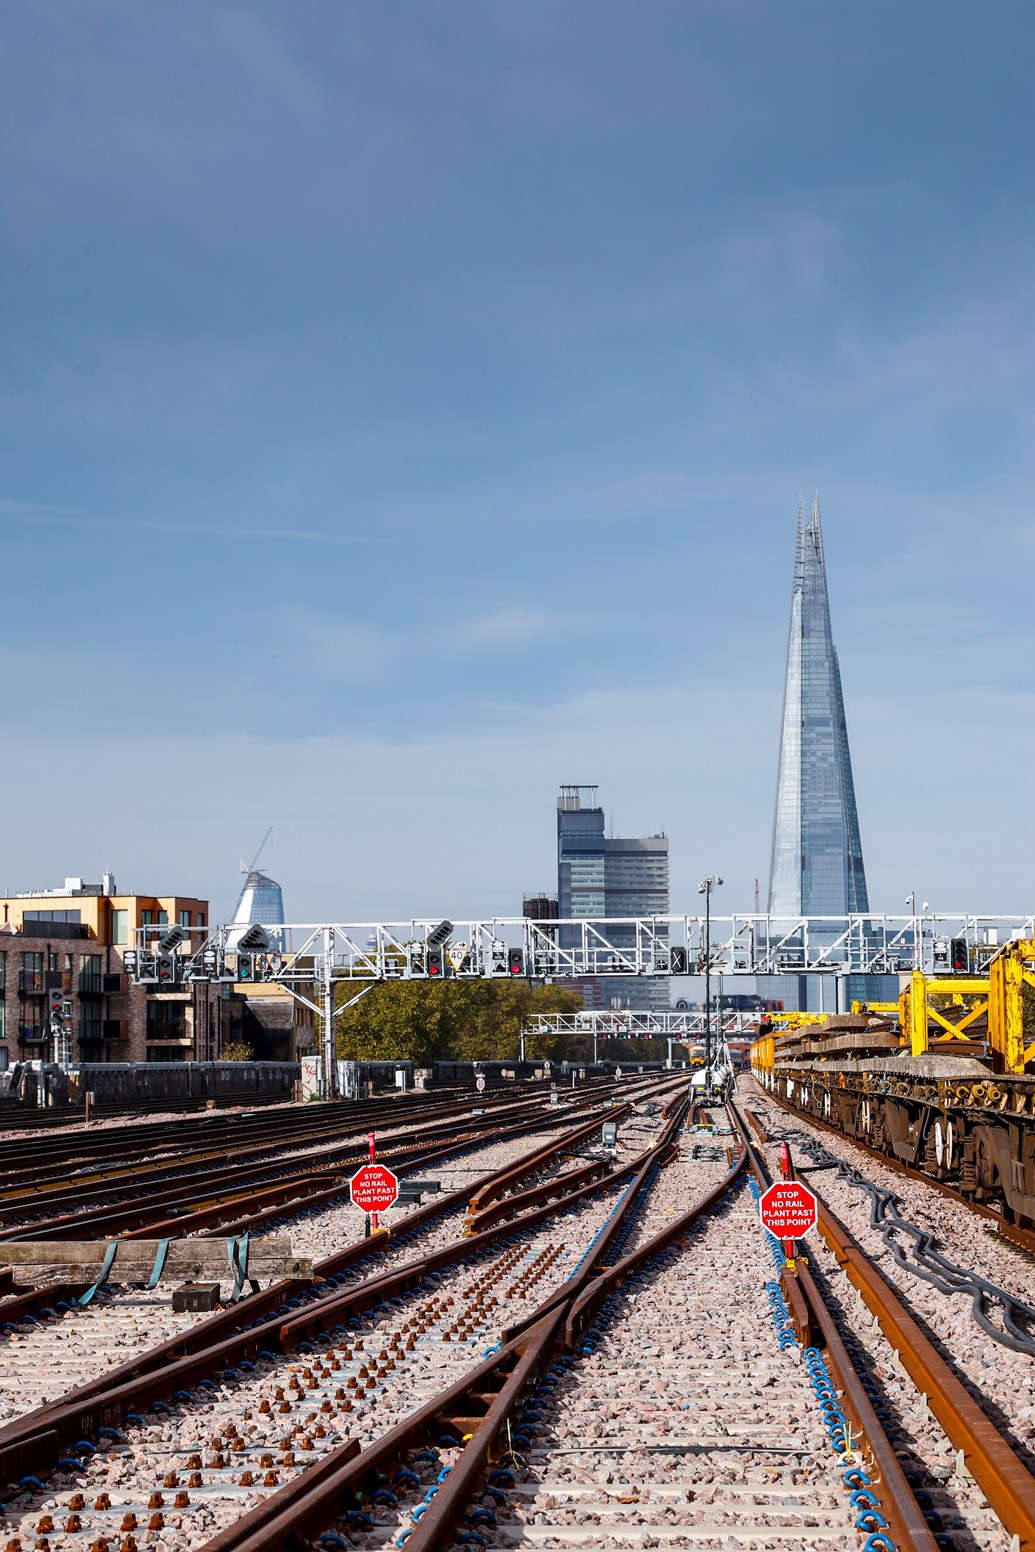 Passengers in the south east set to benefit from Network Rail's bumper Christmas investment: LondonBridgeTrackNov